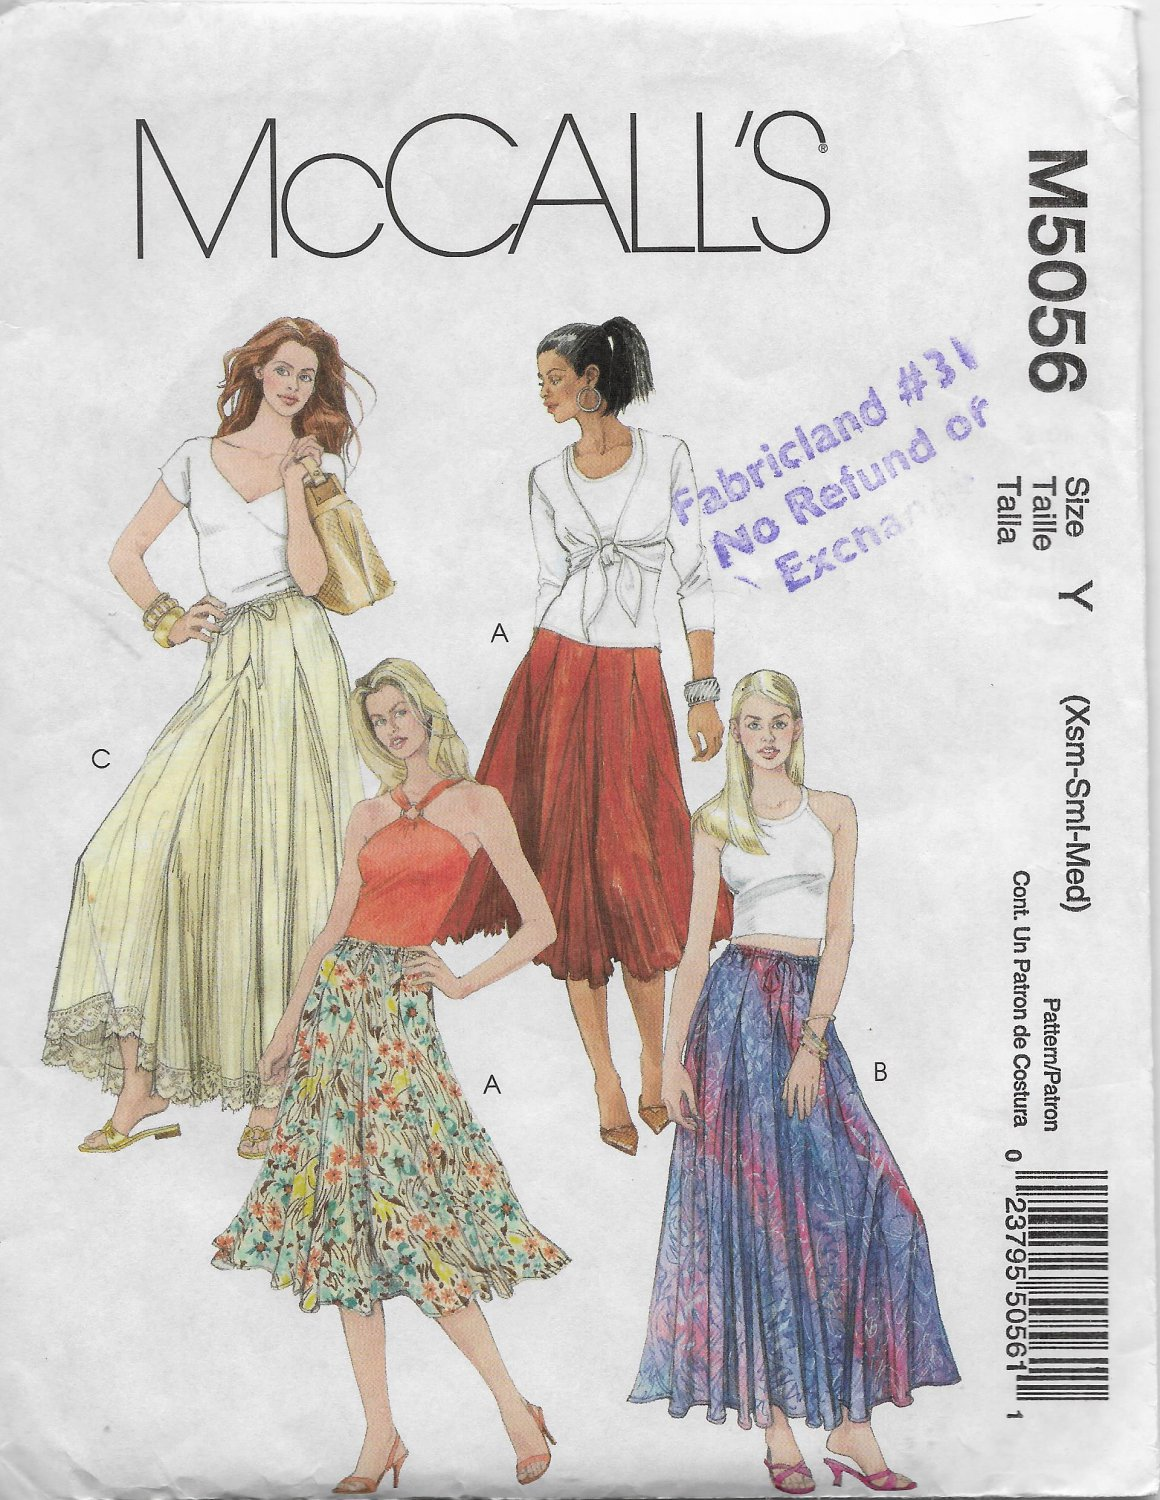 McCalls 5056 Women Flared Skirts in Two Lengths Sizes X Small, Small, Medium